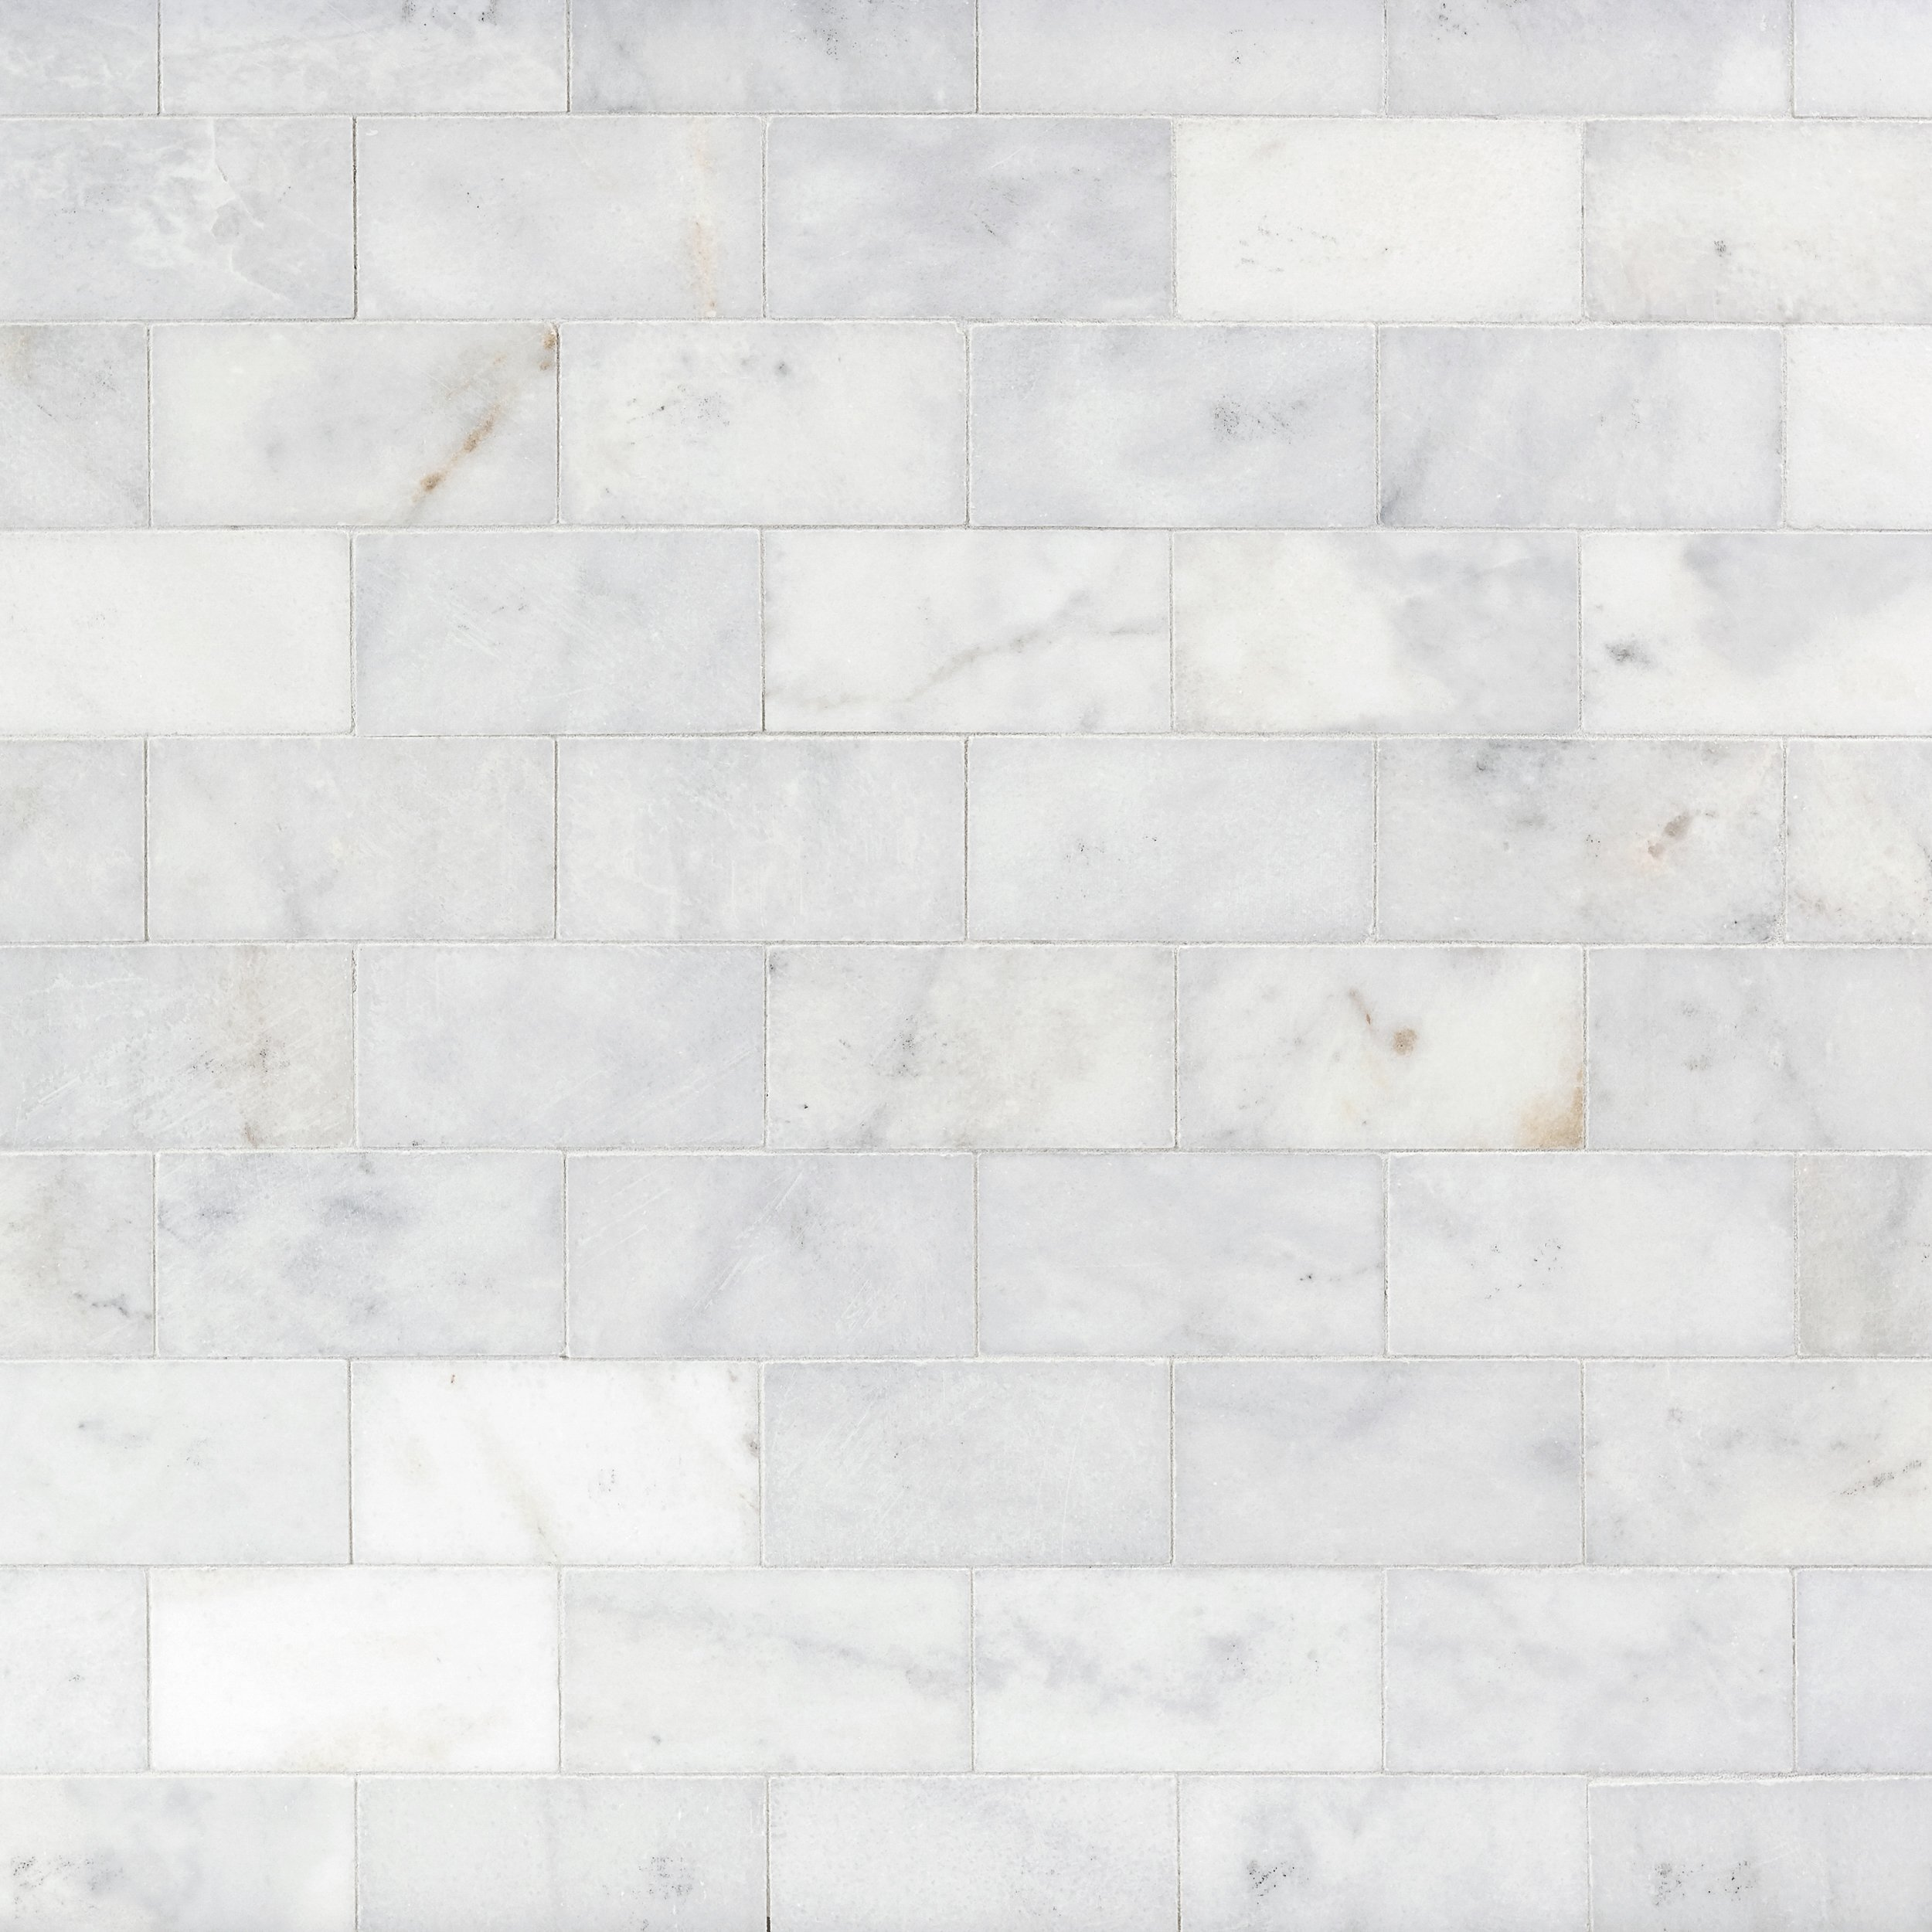 Carrara Milano Honed Marble Tile 6 X 12 100402569 Floor And Decor